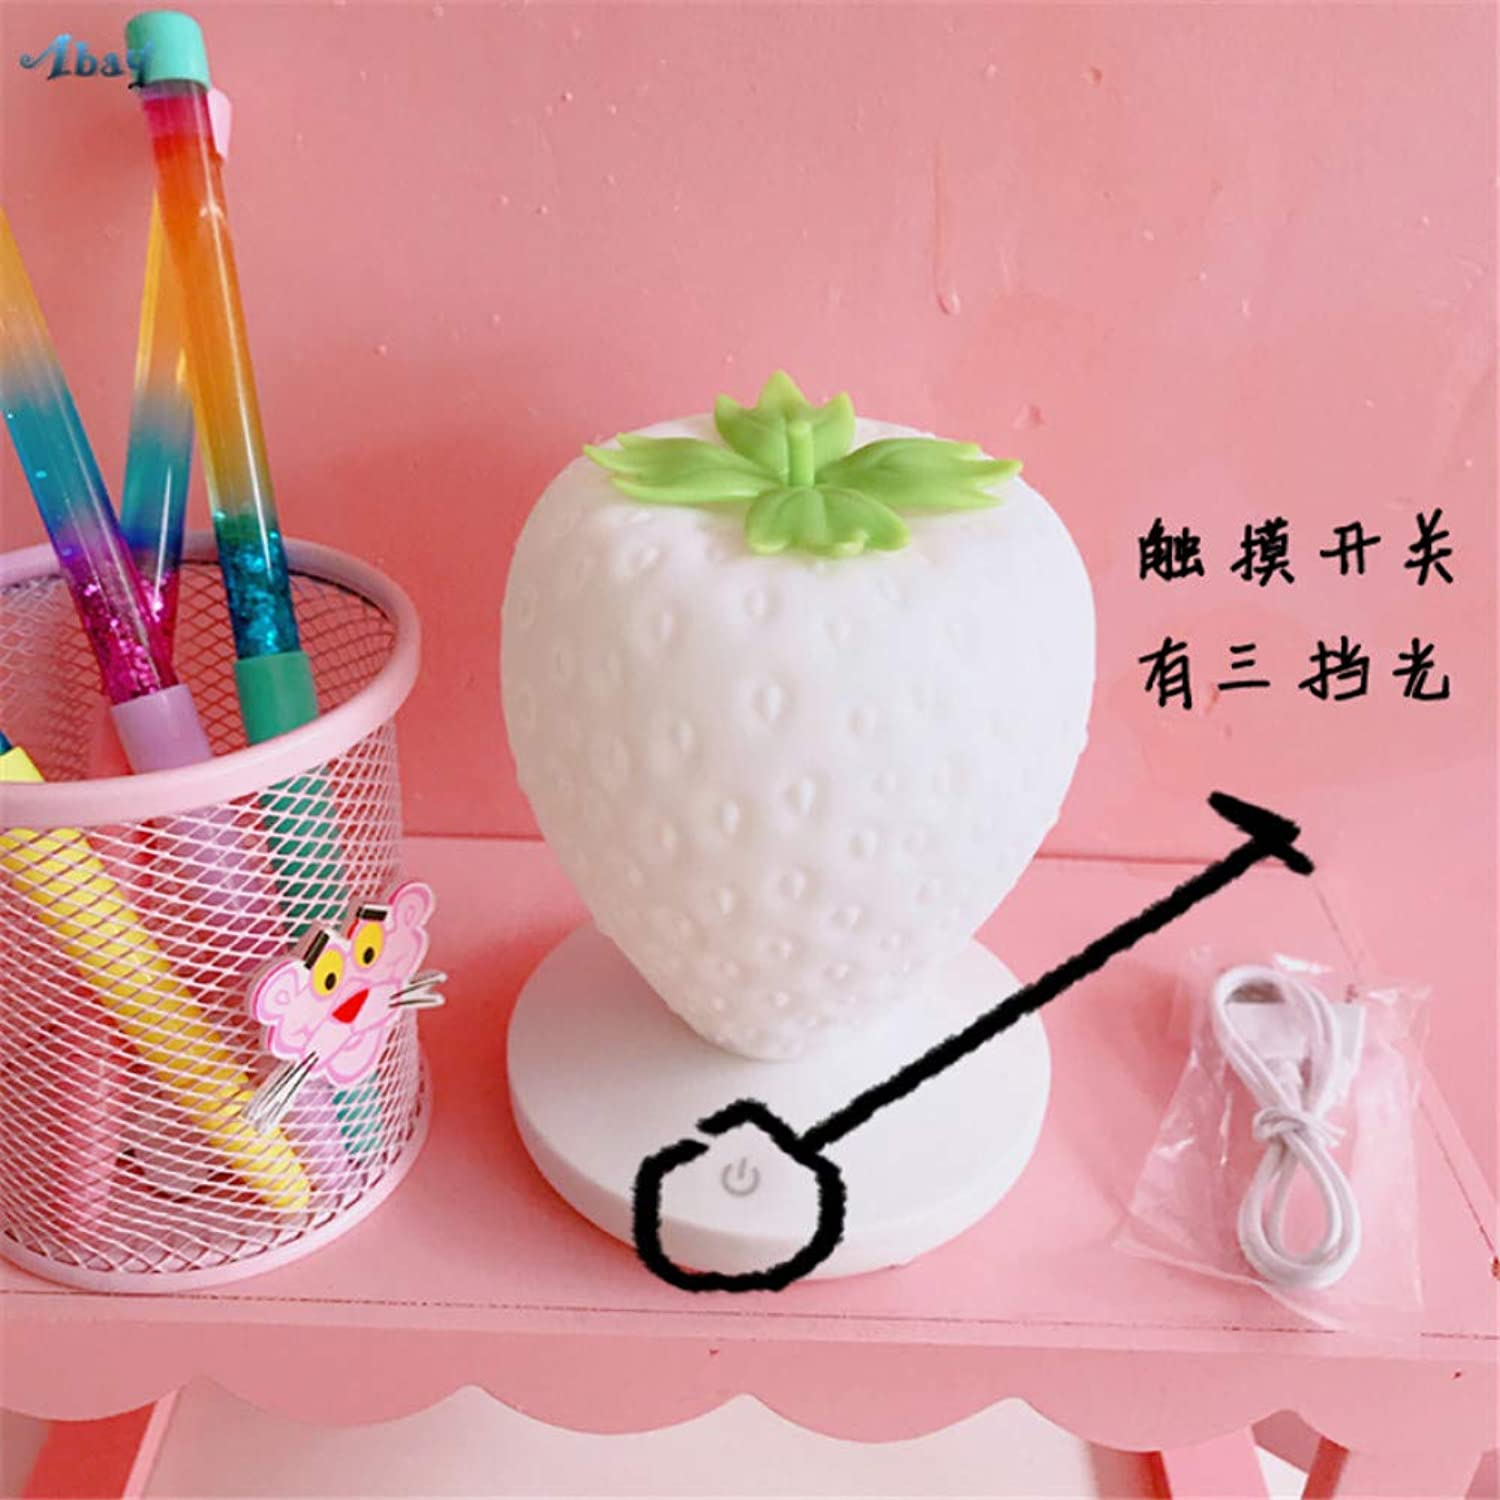 KKXXYD Cute Creative Strawberry Pink Night Lights Princess Room Girl Bedroom Decorative Lamps Bedside Table Ornaments Girl Gift Lamps